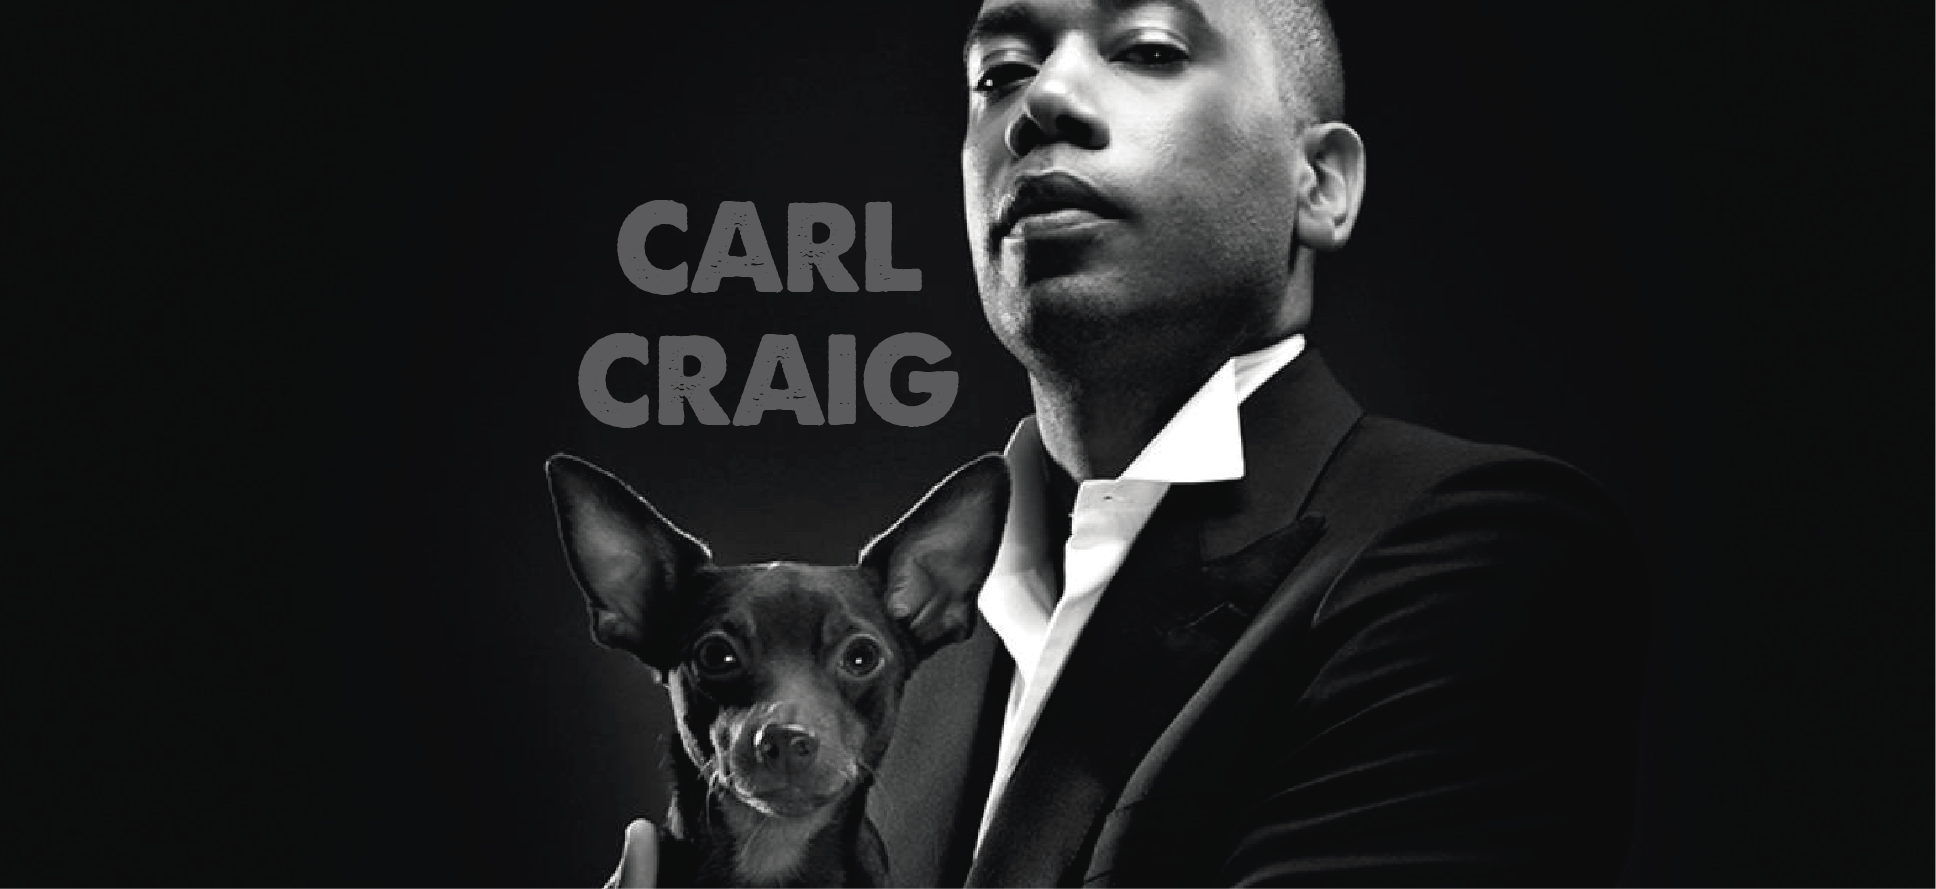 Profile: CARL CRAIG